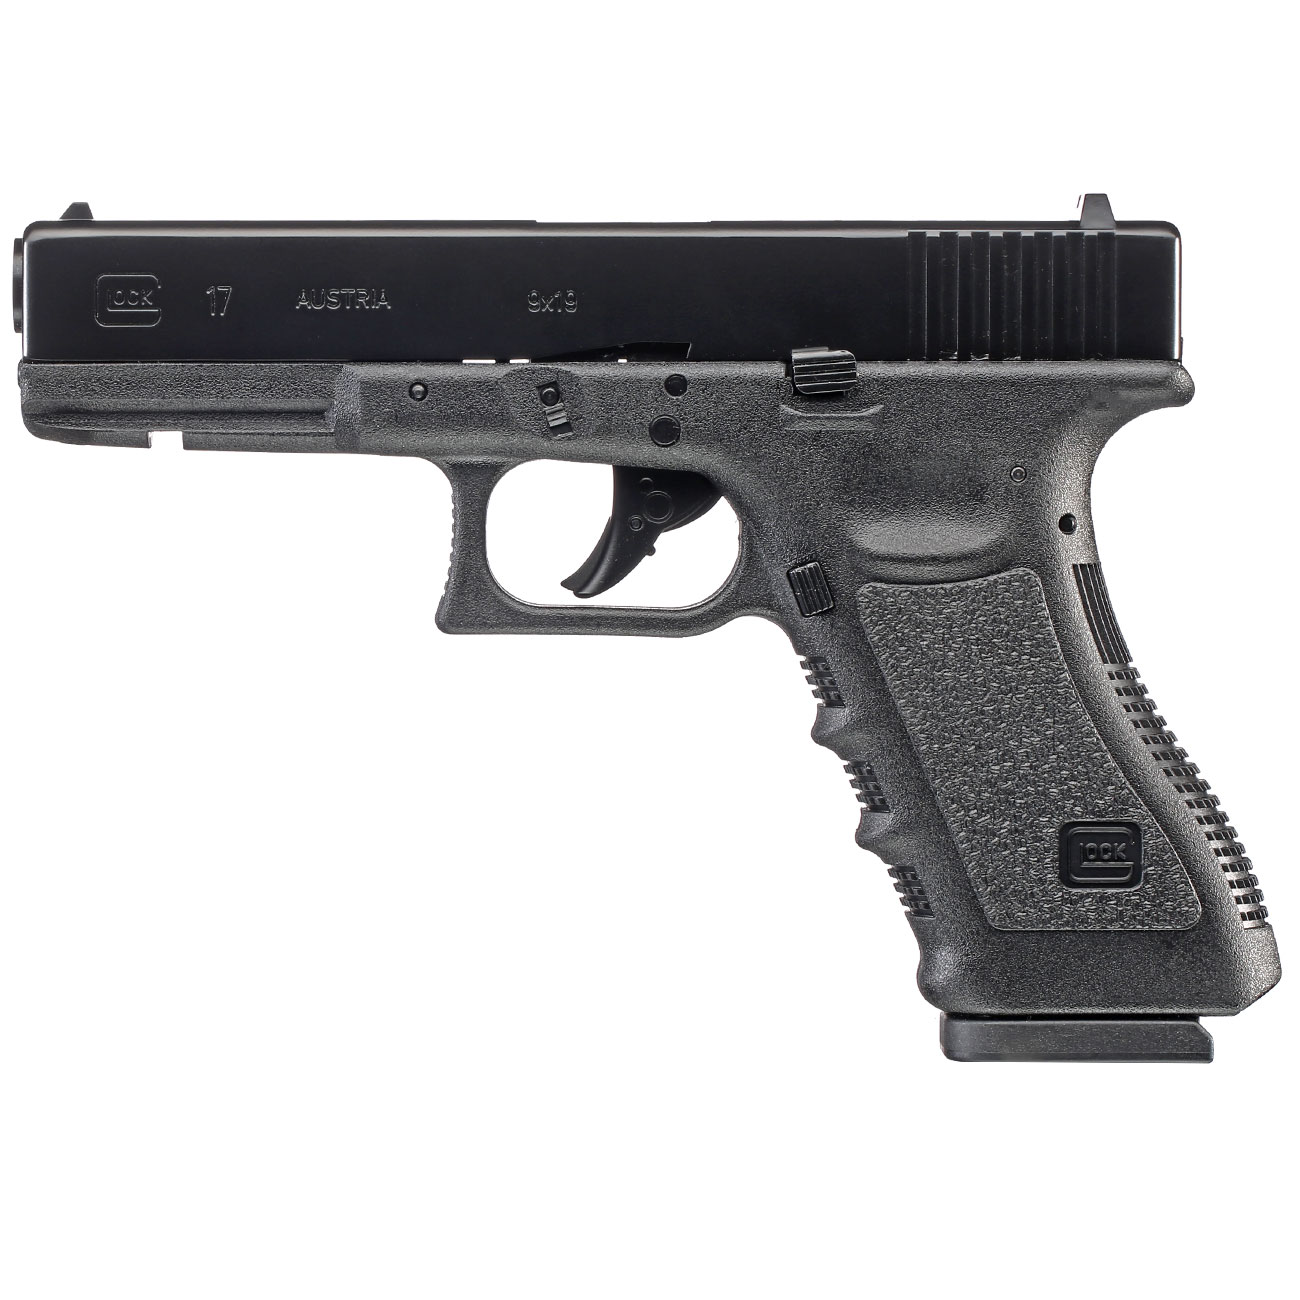 Glock 17 CO2 Luftpistole Kal. 4,5 mm BB 0